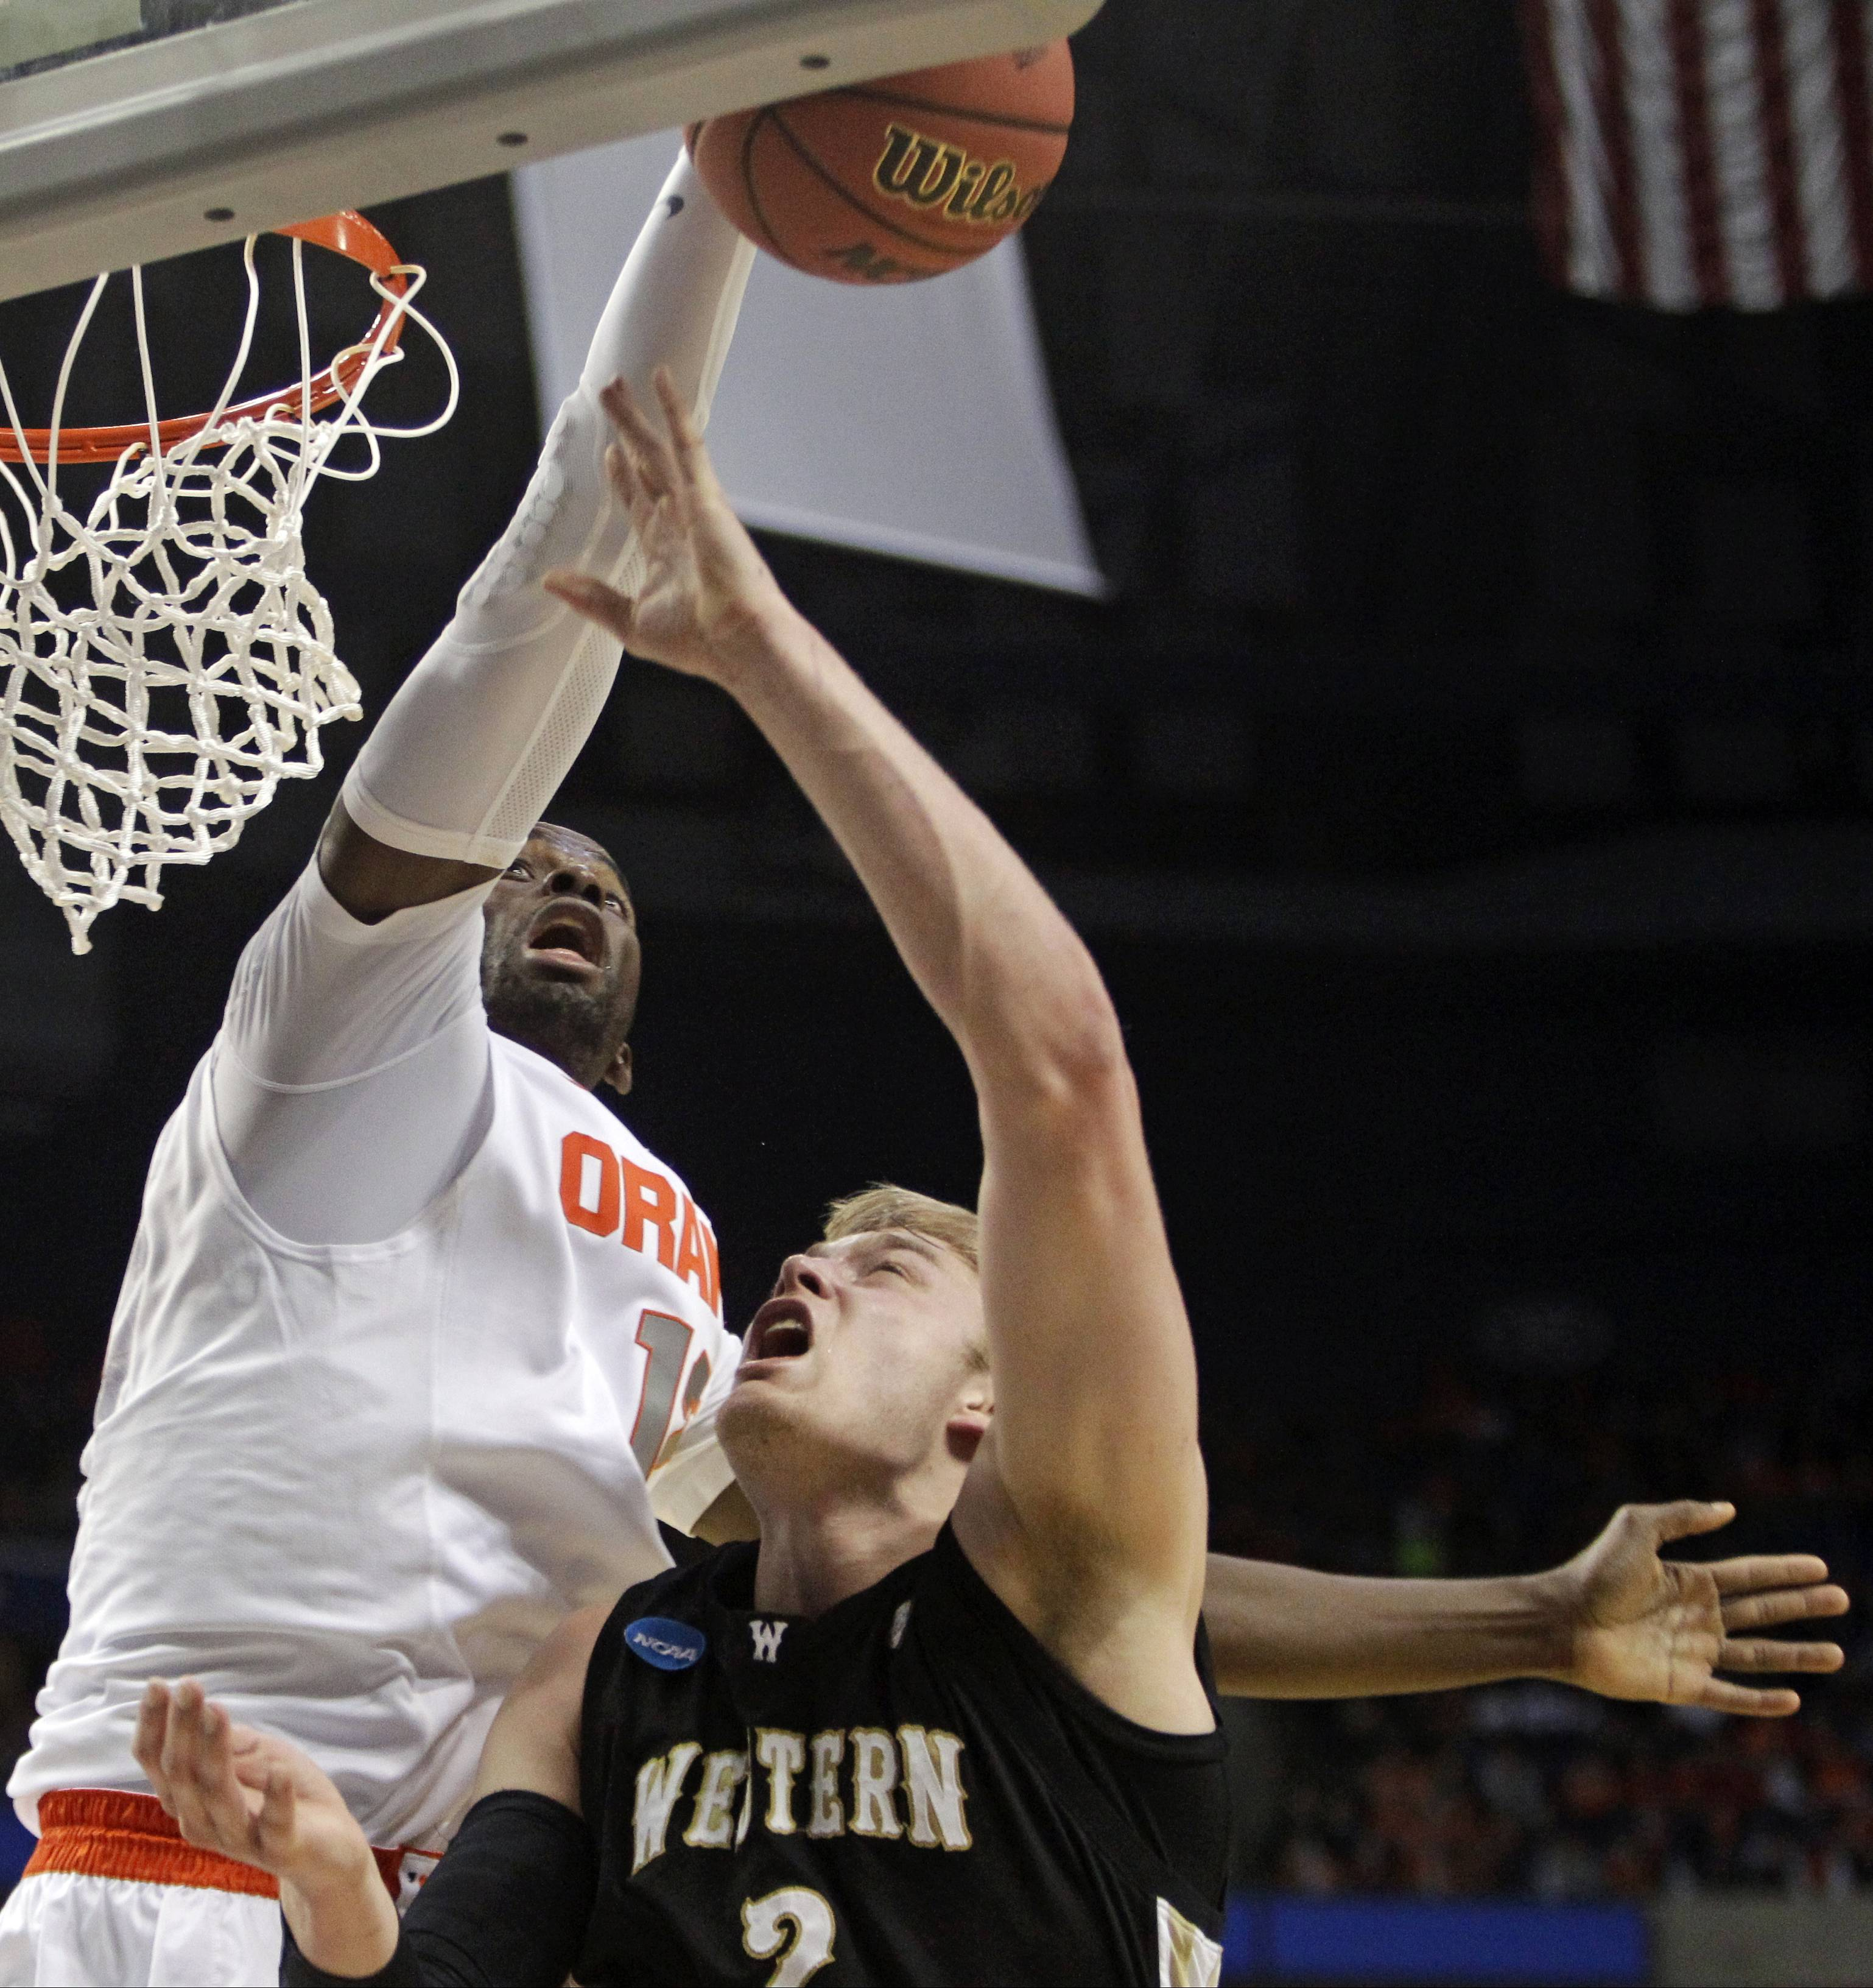 Syracuse's Baye-Moussa Keita, left, blocks a shot by Western Michigan's Connar Tava during the second half of a second-round game in the NCAA college basketball tournament in Buffalo, N.Y., Thursday, March 20, 2014.